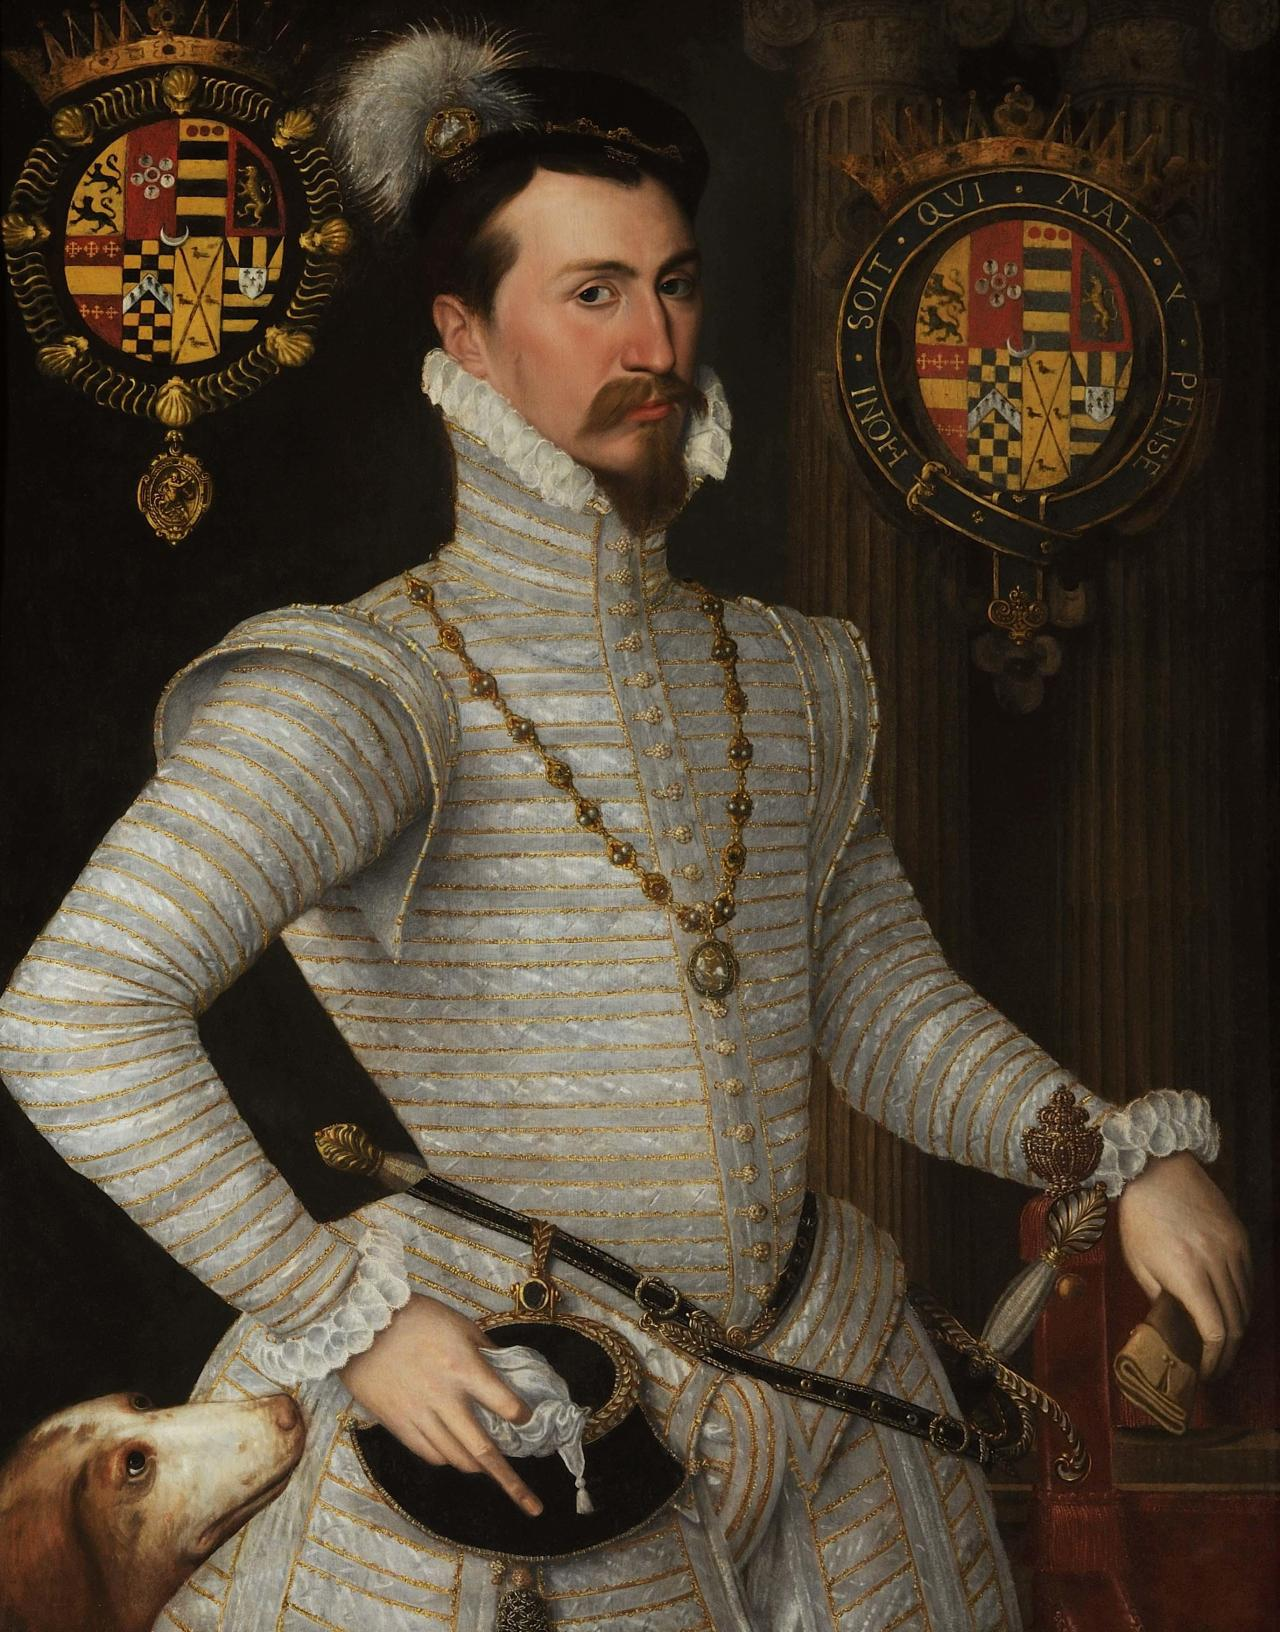 Robert Dudley, Earl of Leicester owner of Kenilworth Castle